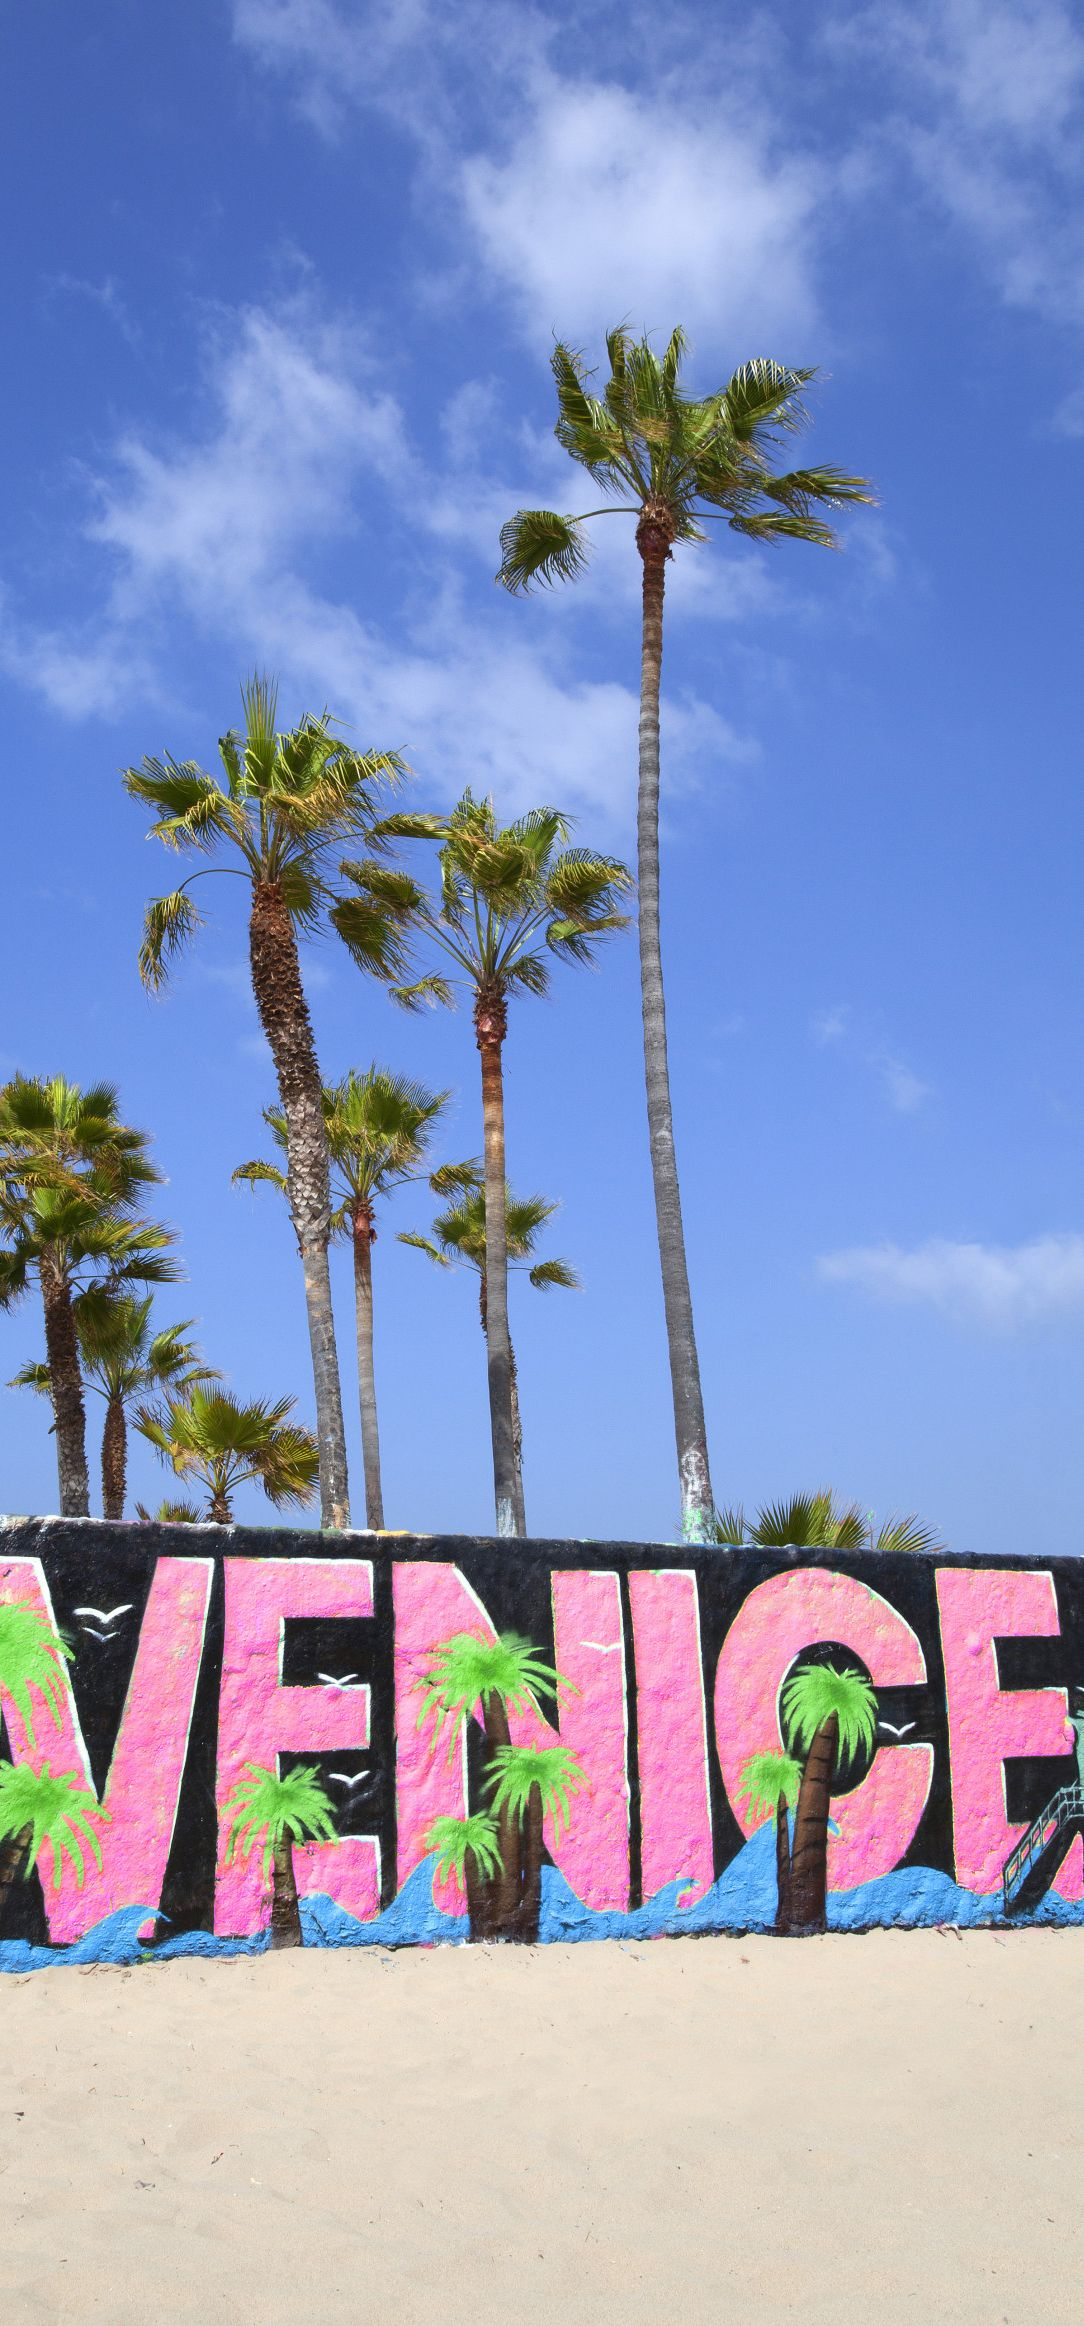 GoAltaCA Venice Beach California Adventures Venice beach 1084x2326